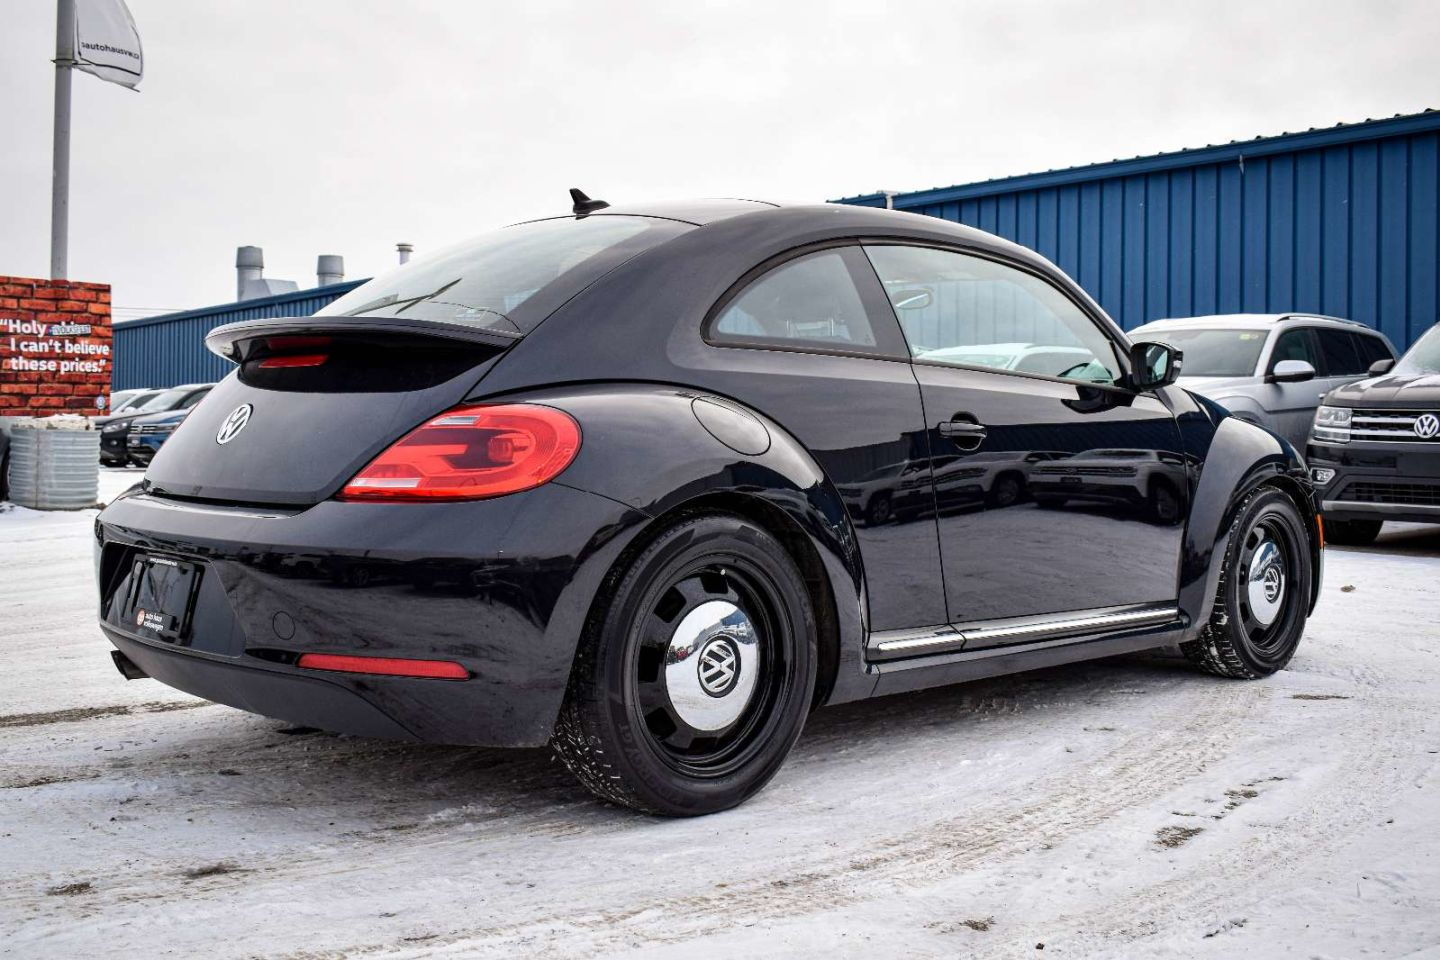 2016 Volkswagen Beetle Coupe Classic for sale in Winnipeg, Manitoba